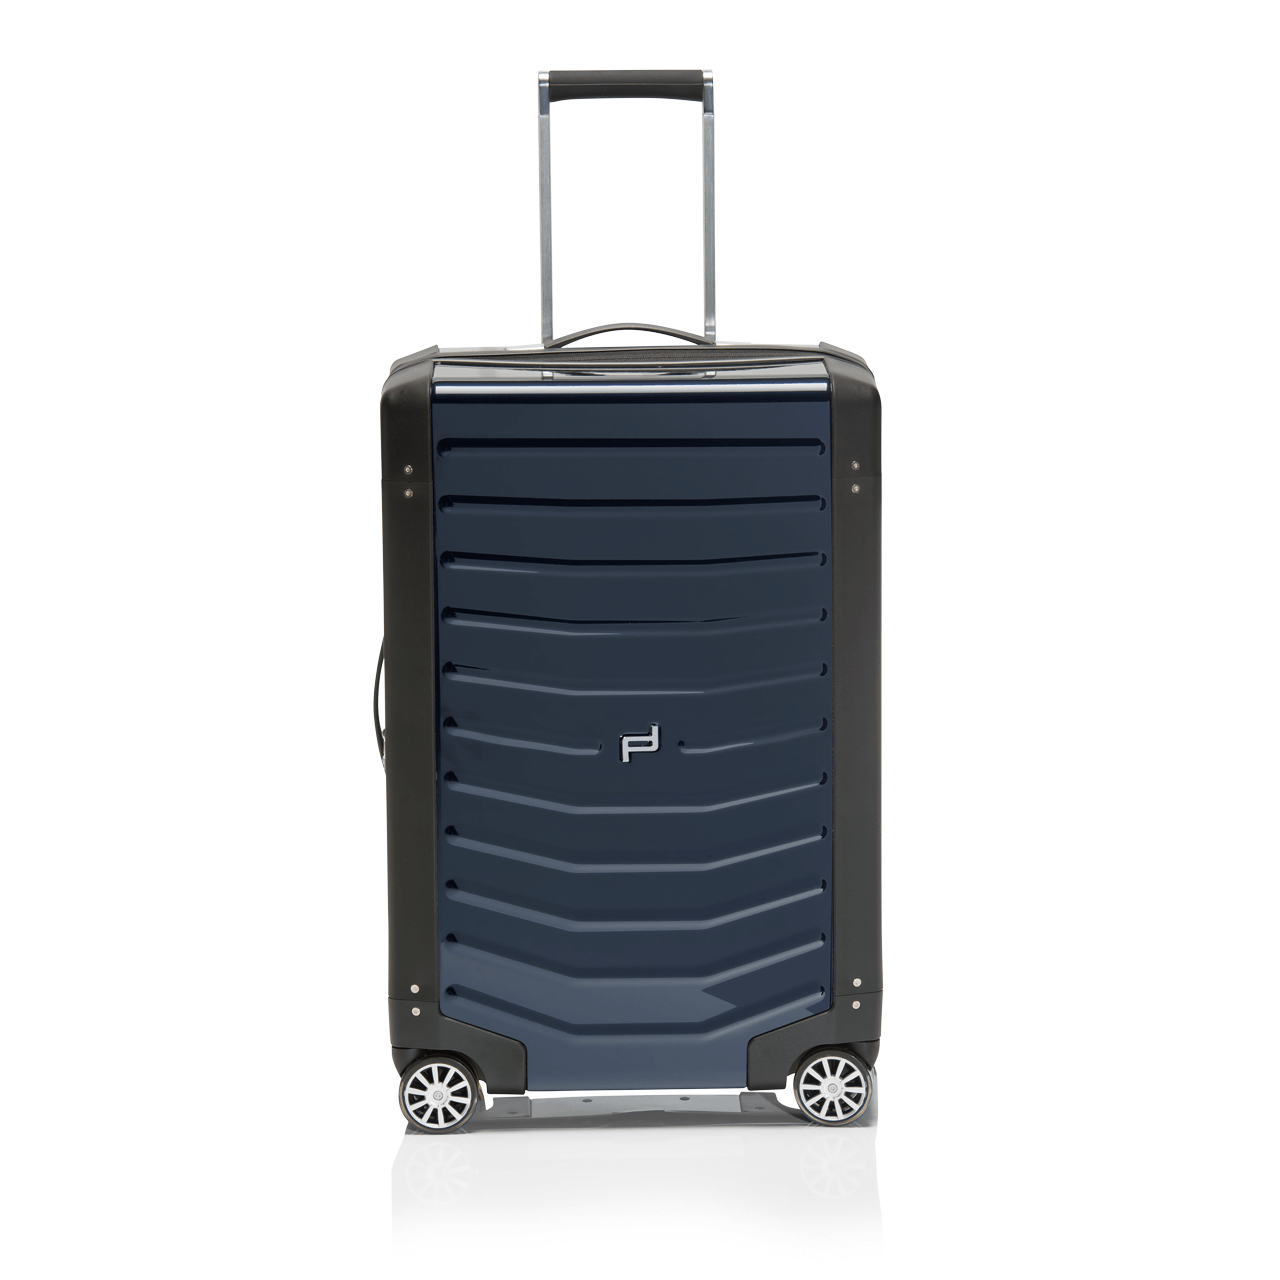 ROADSTER HARDCASE TROLLEY M - фото 3